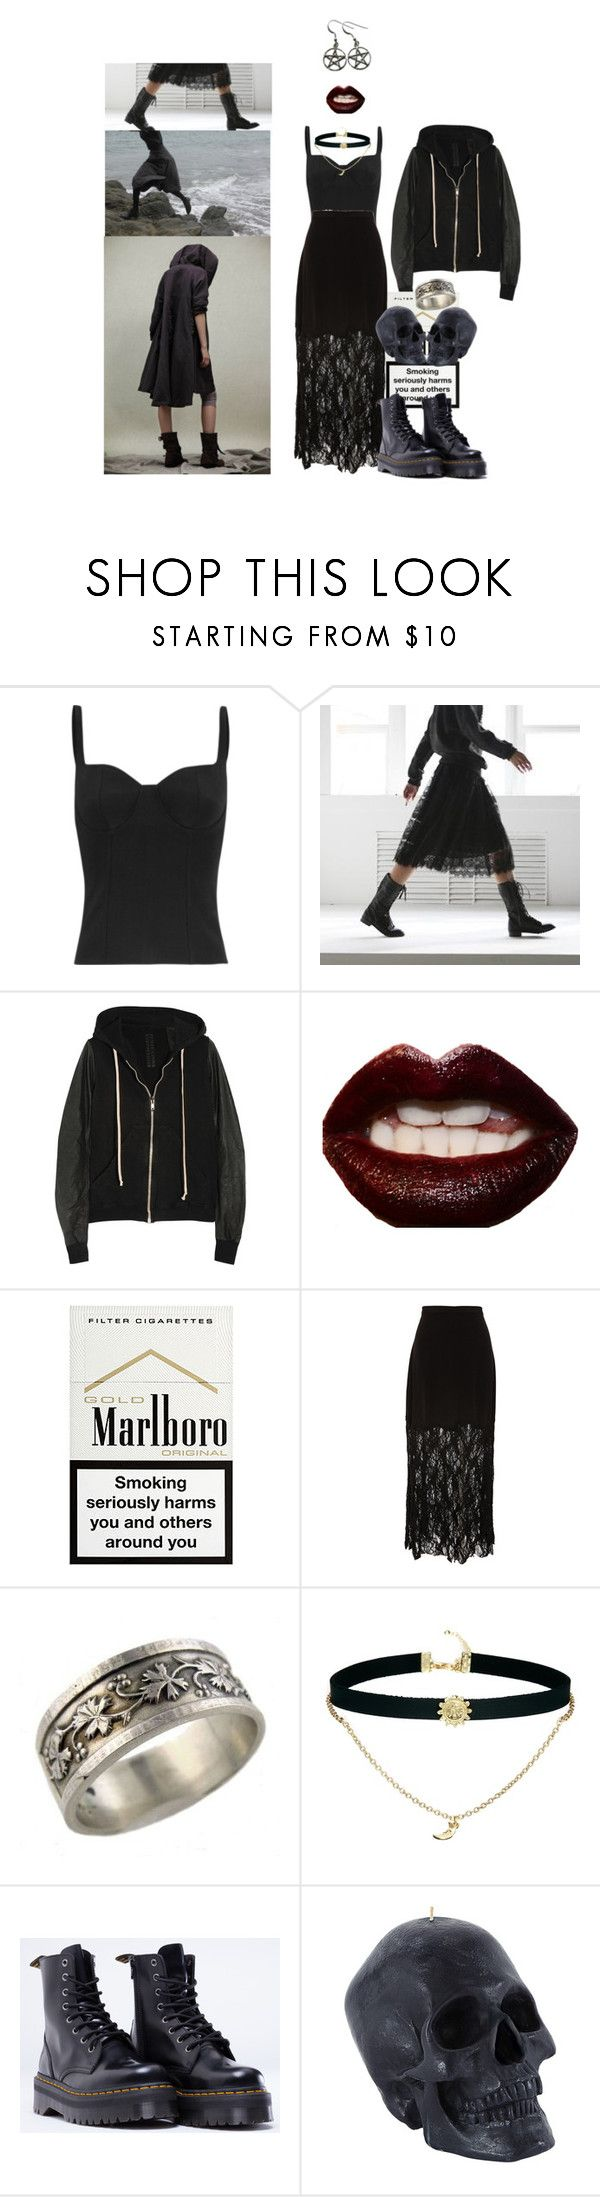 """life always disappoints me."" by deviousinstinct ❤ liked on Polyvore featuring Alexander McQueen, DRKSHDW, Nicholas K, Manic Panic NYC, Opening Ceremony, ASOS and Dr. Martens"